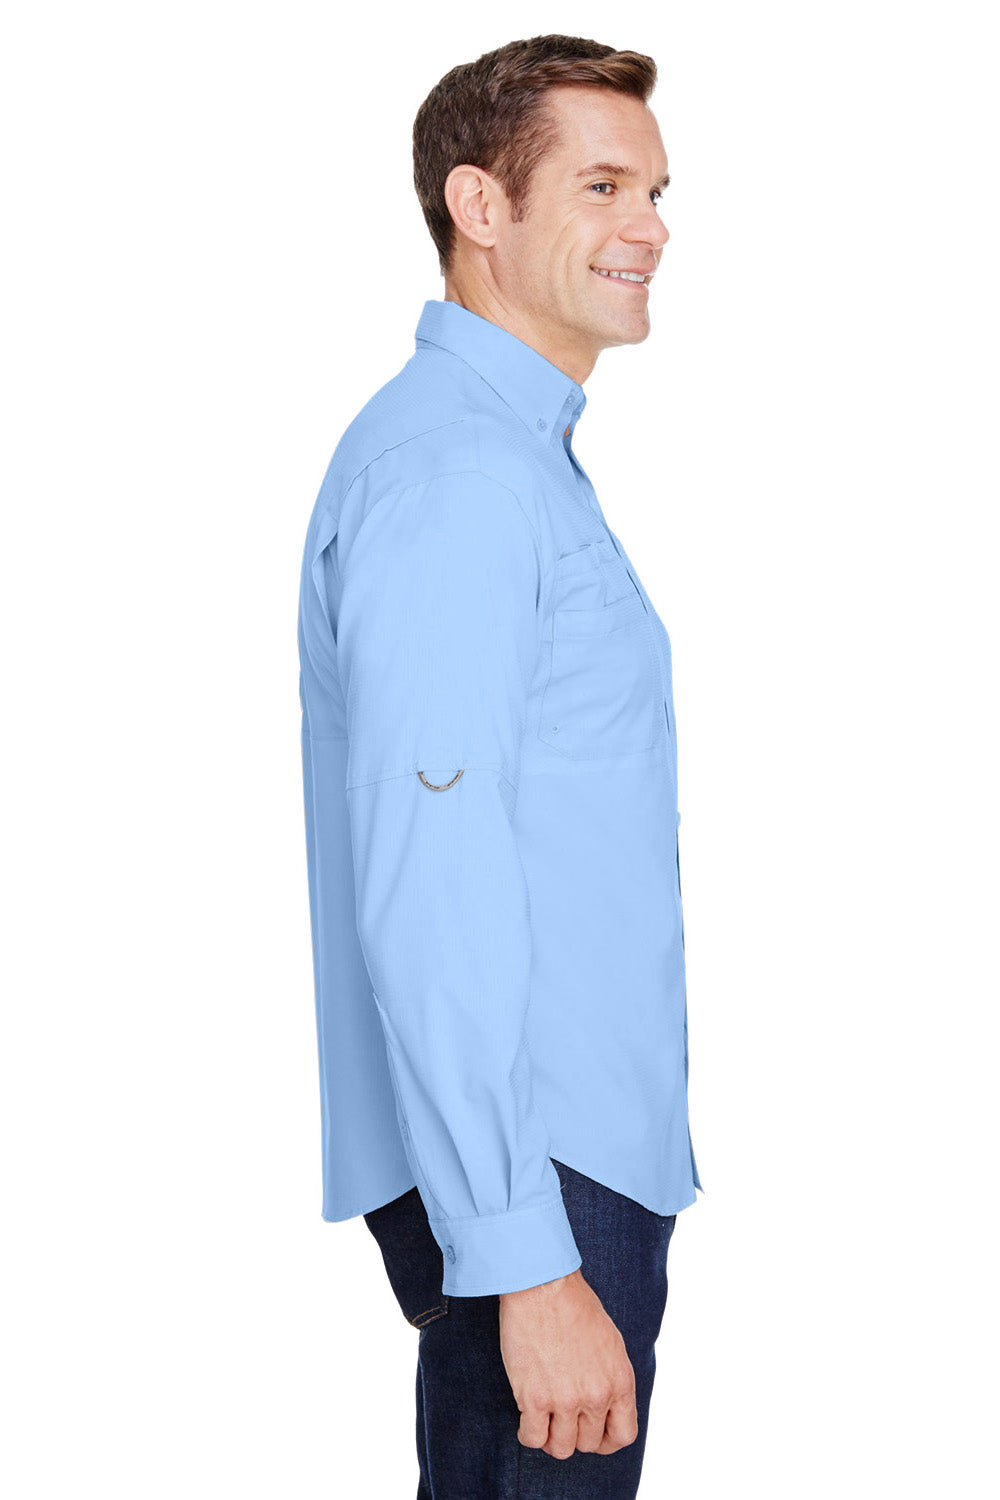 Columbia 7253 Mens Tamiami II Moisture Wicking Long Sleeve Button Down Shirt w/ Double Pockets Sail Blue Side